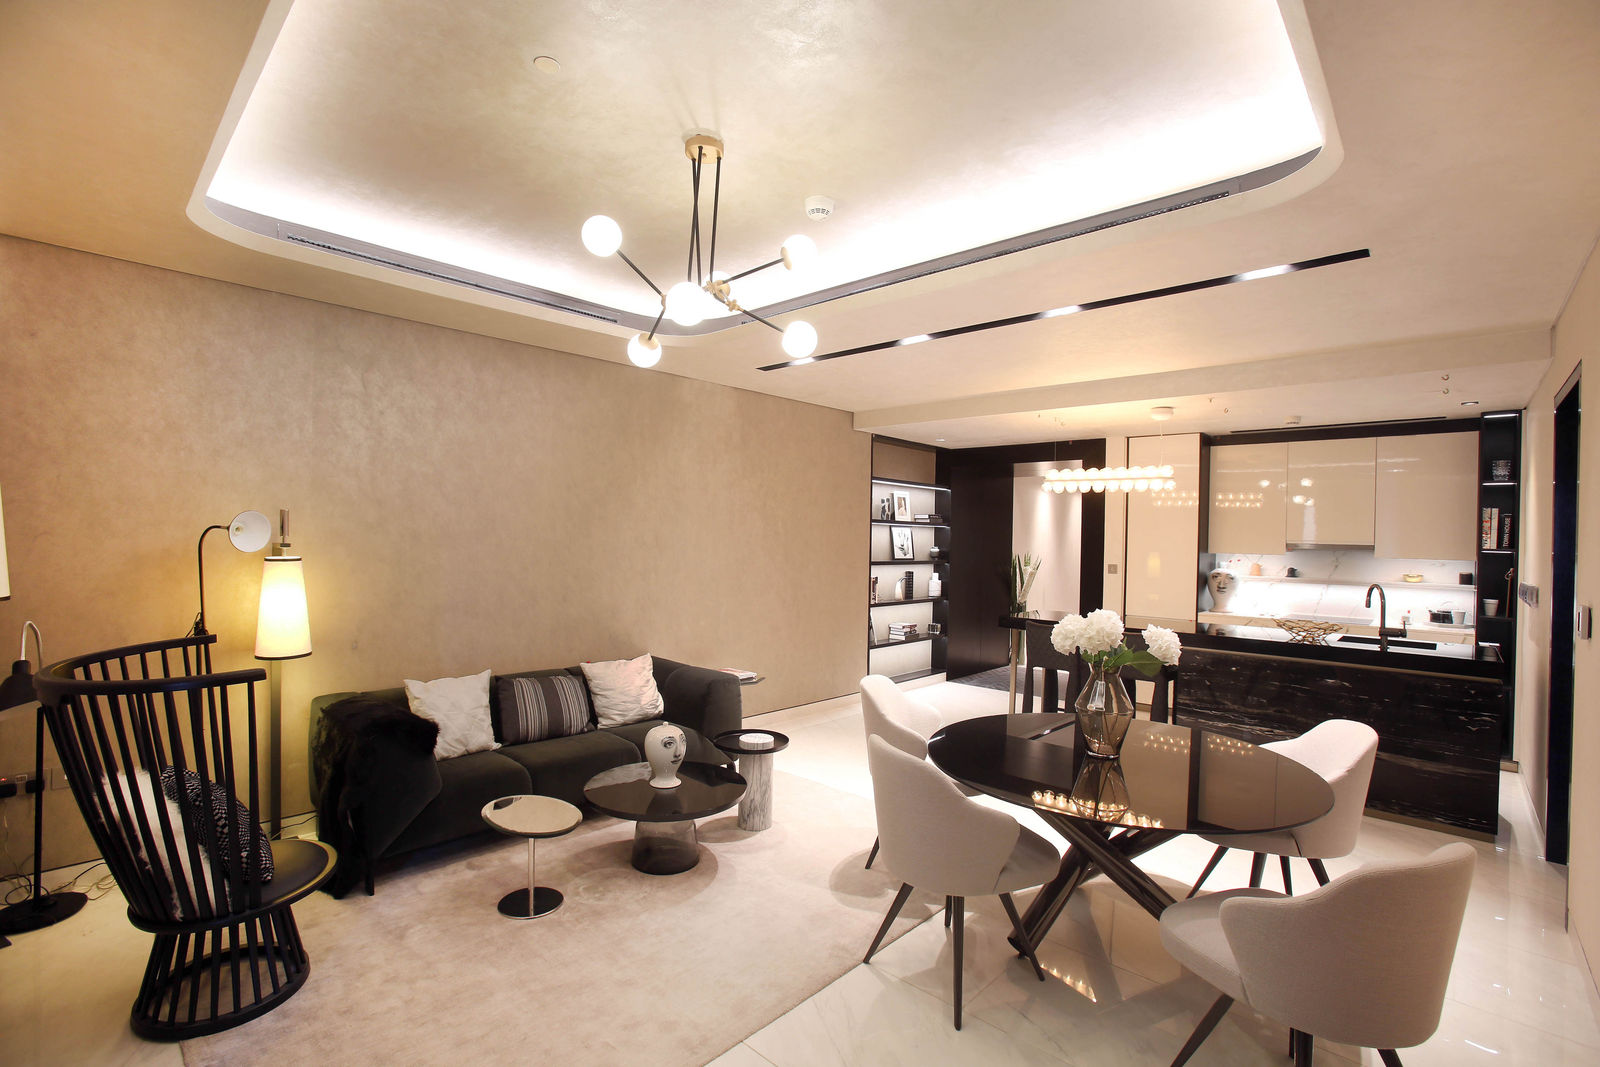 Stunning Apartment for Sale in The Pearl, Doha, Qatar - Image BY FG Realty